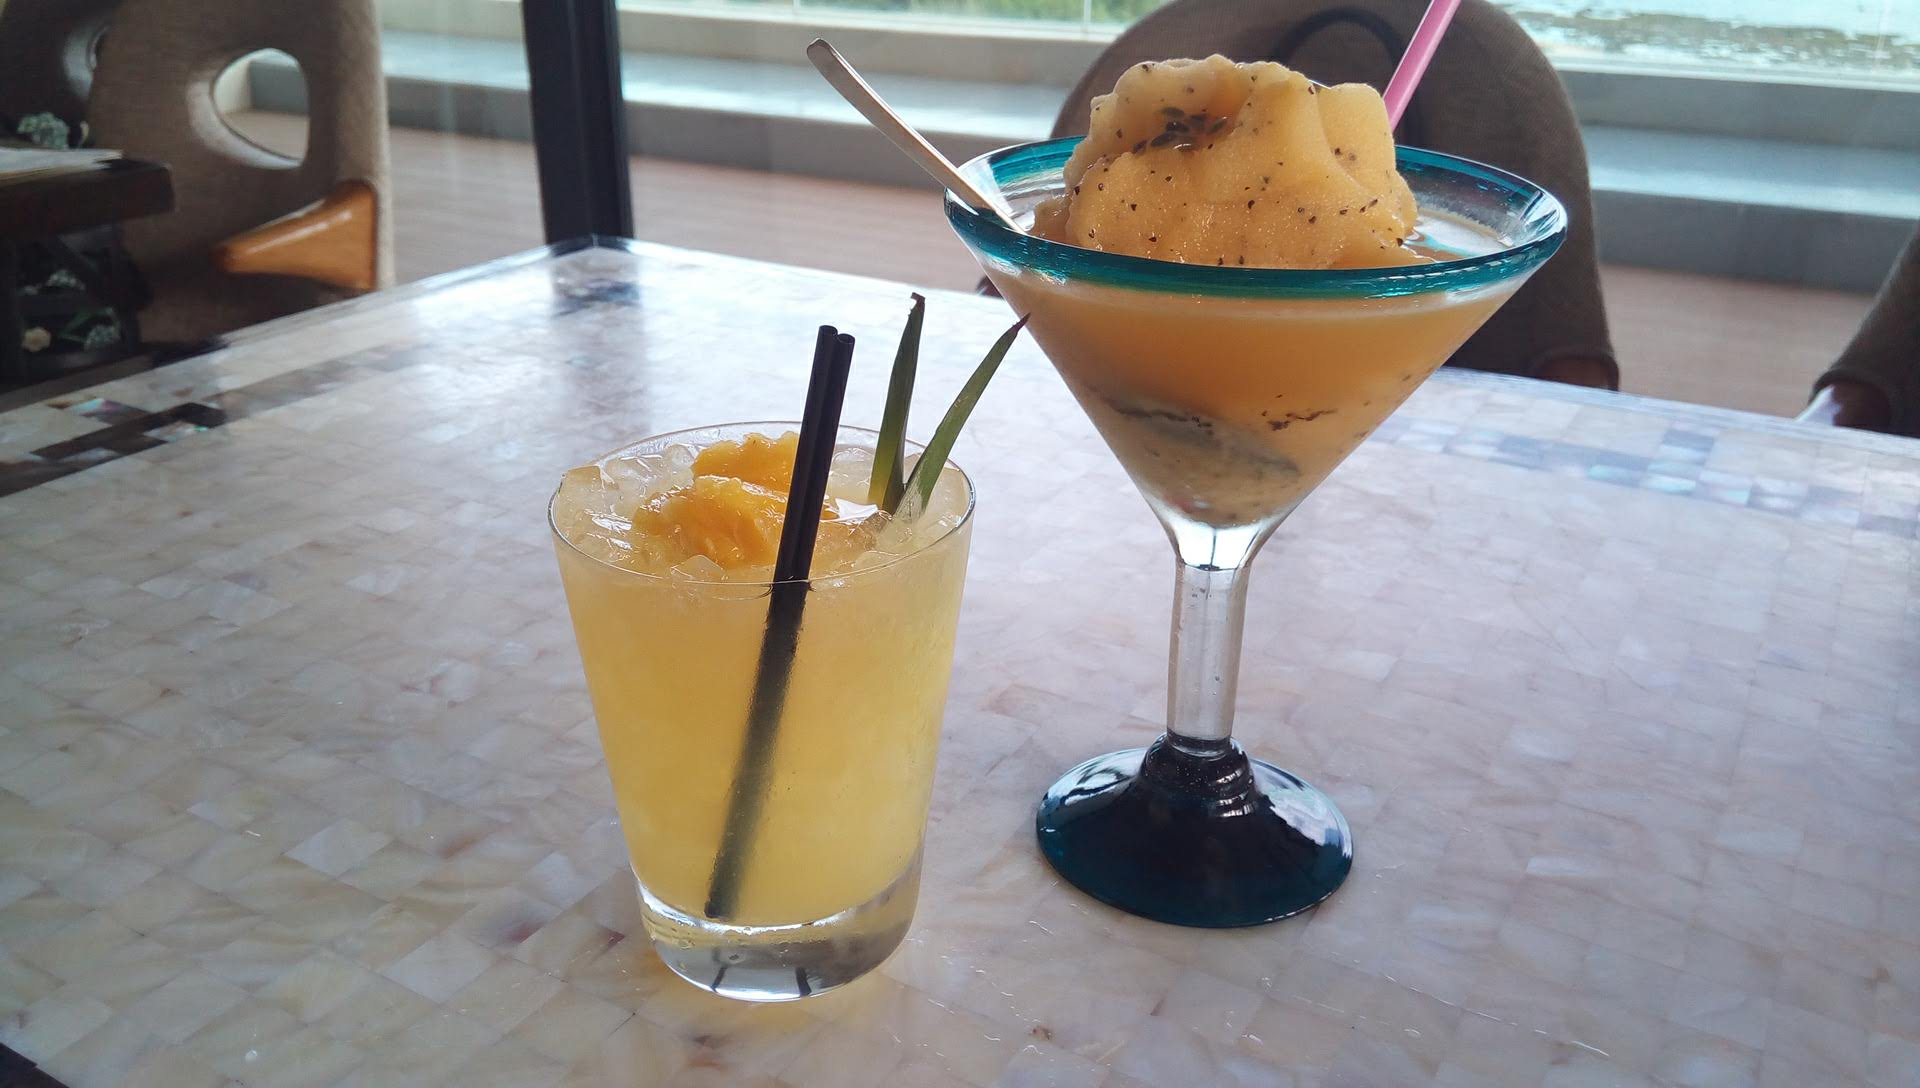 Capirosska of Shikuwasa and pineapple on Ogimi village and Okinawa passion fruit virgin frozen